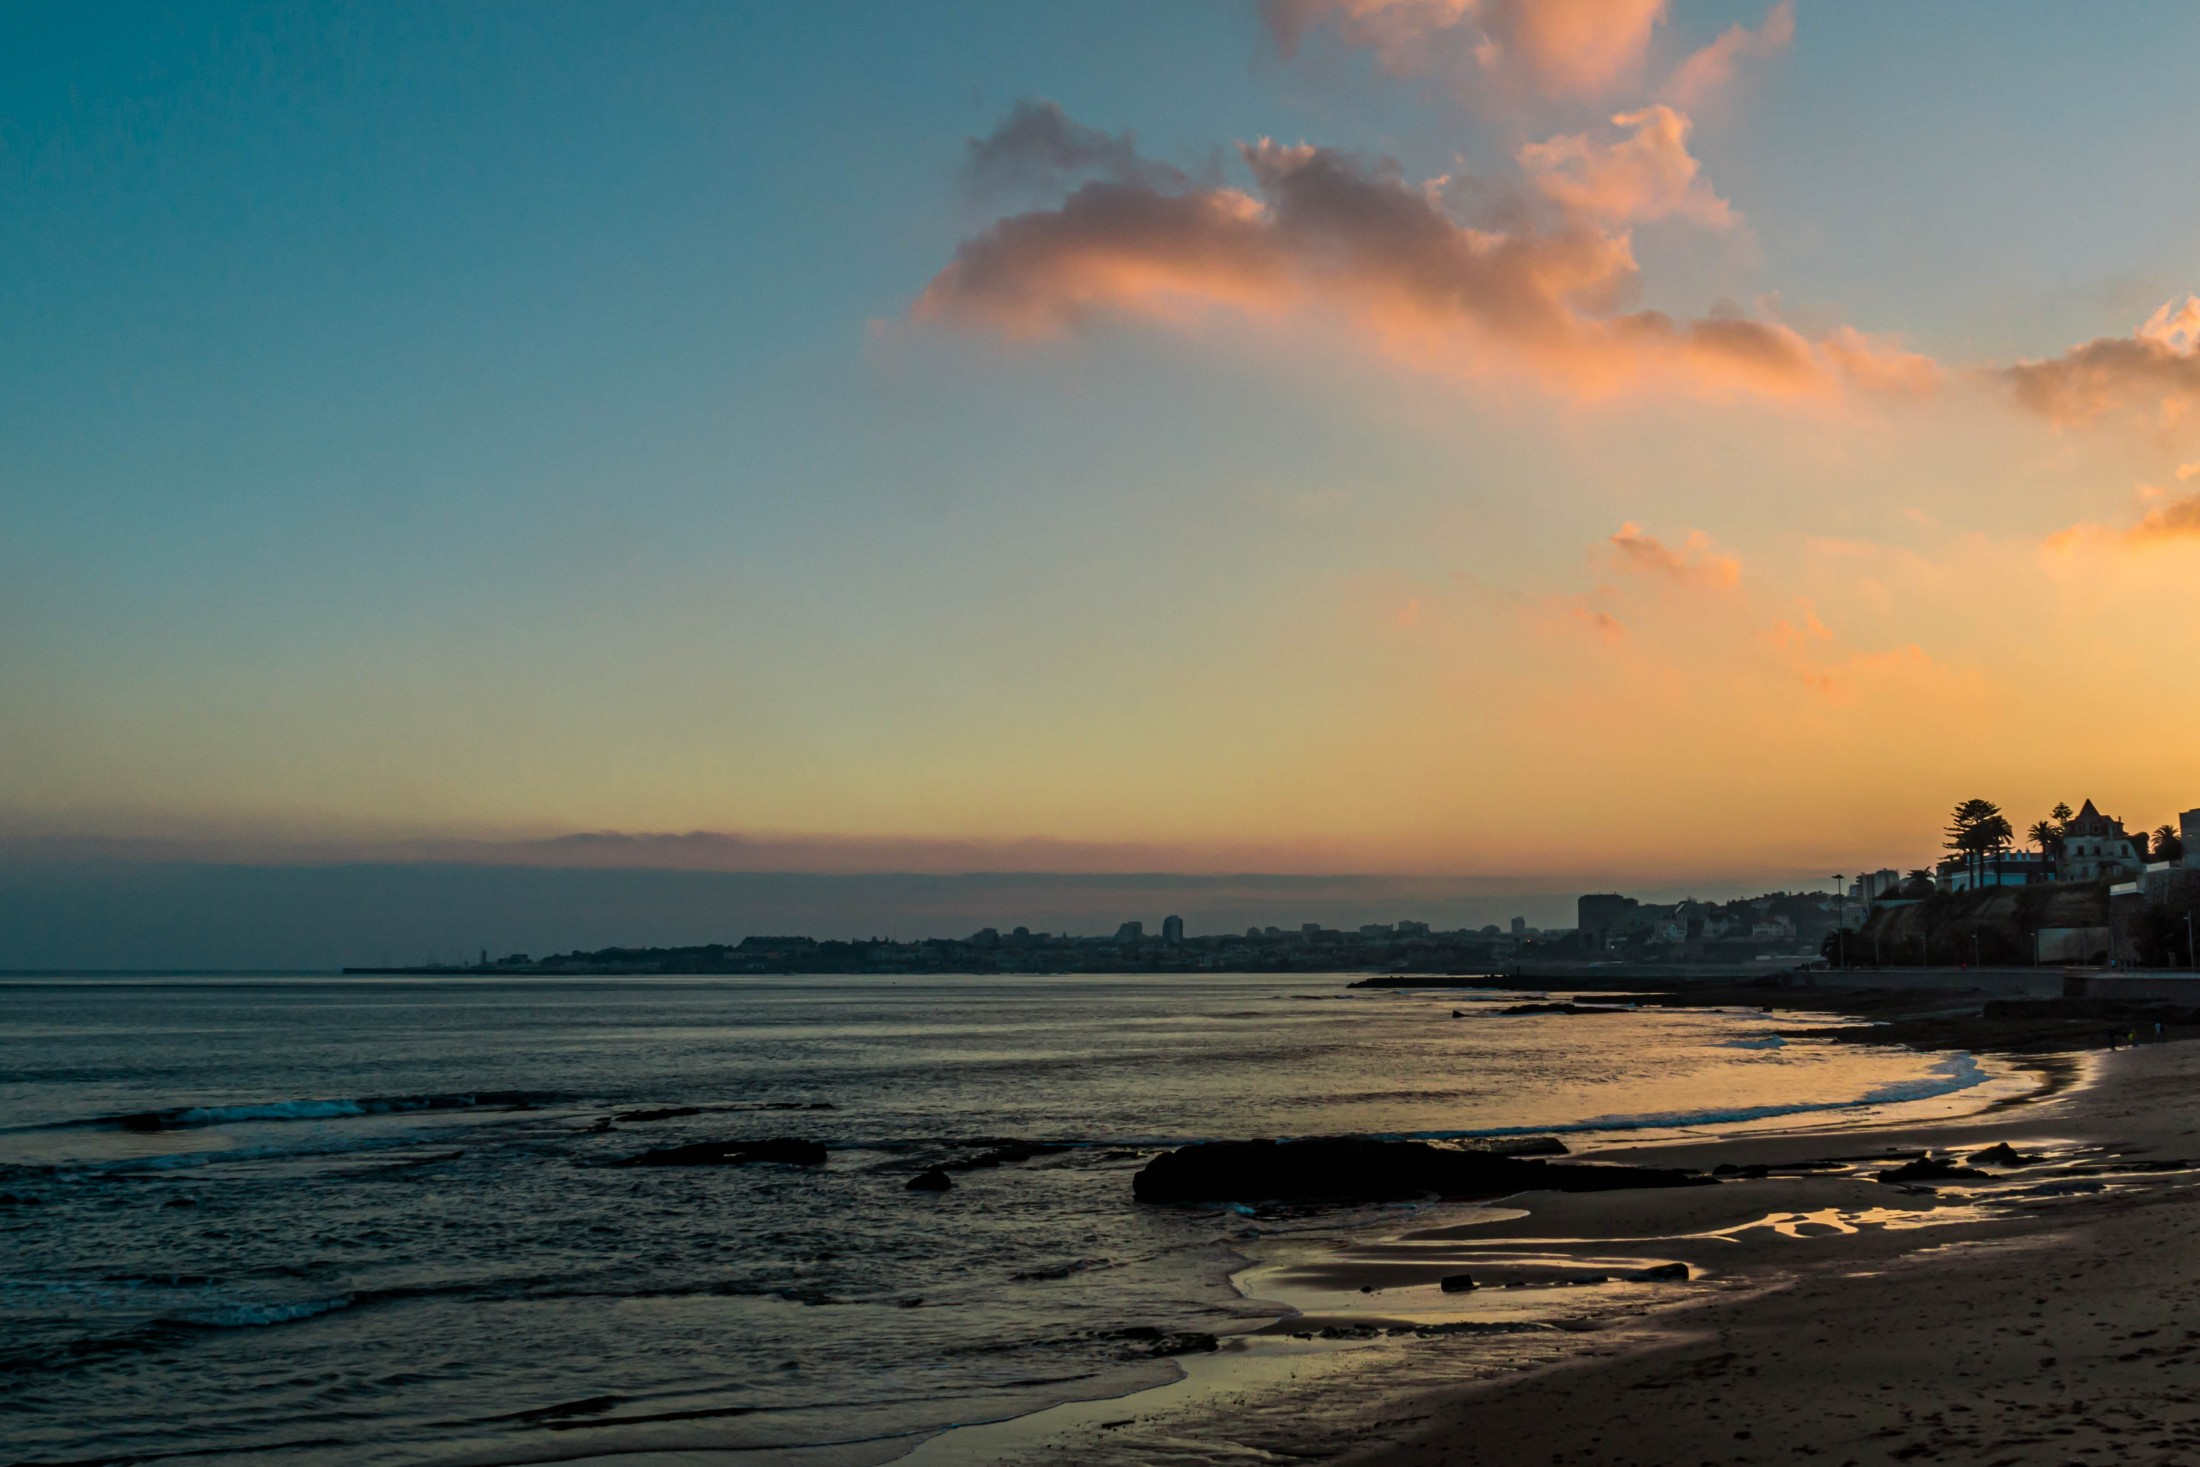 Flowing inspiration - Sunset in Cascais